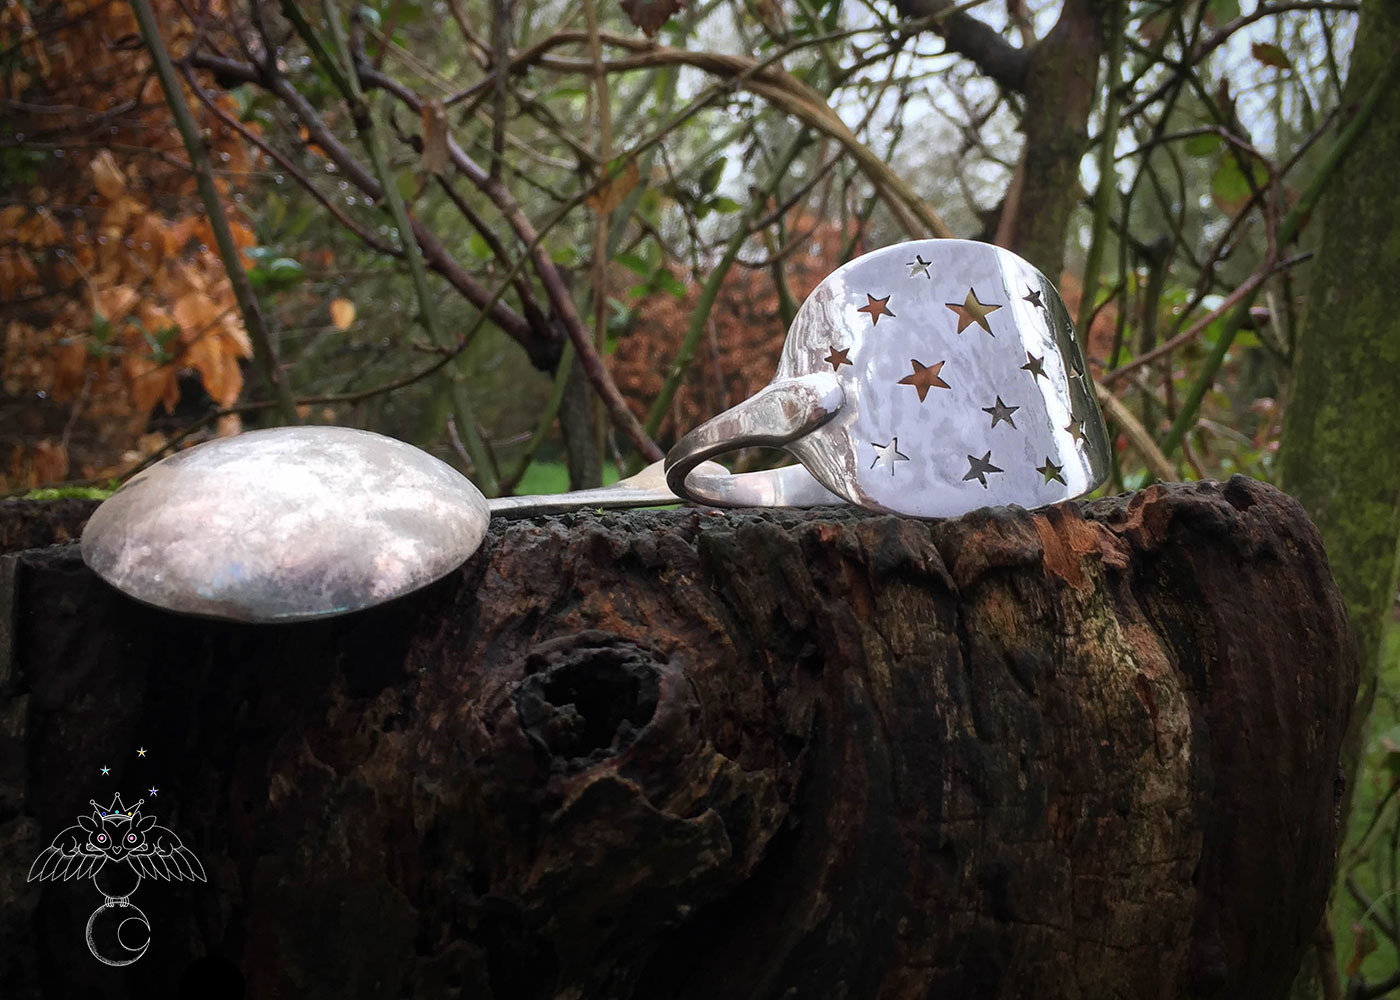 Handmade and recycled star spoon bracelets and bangles